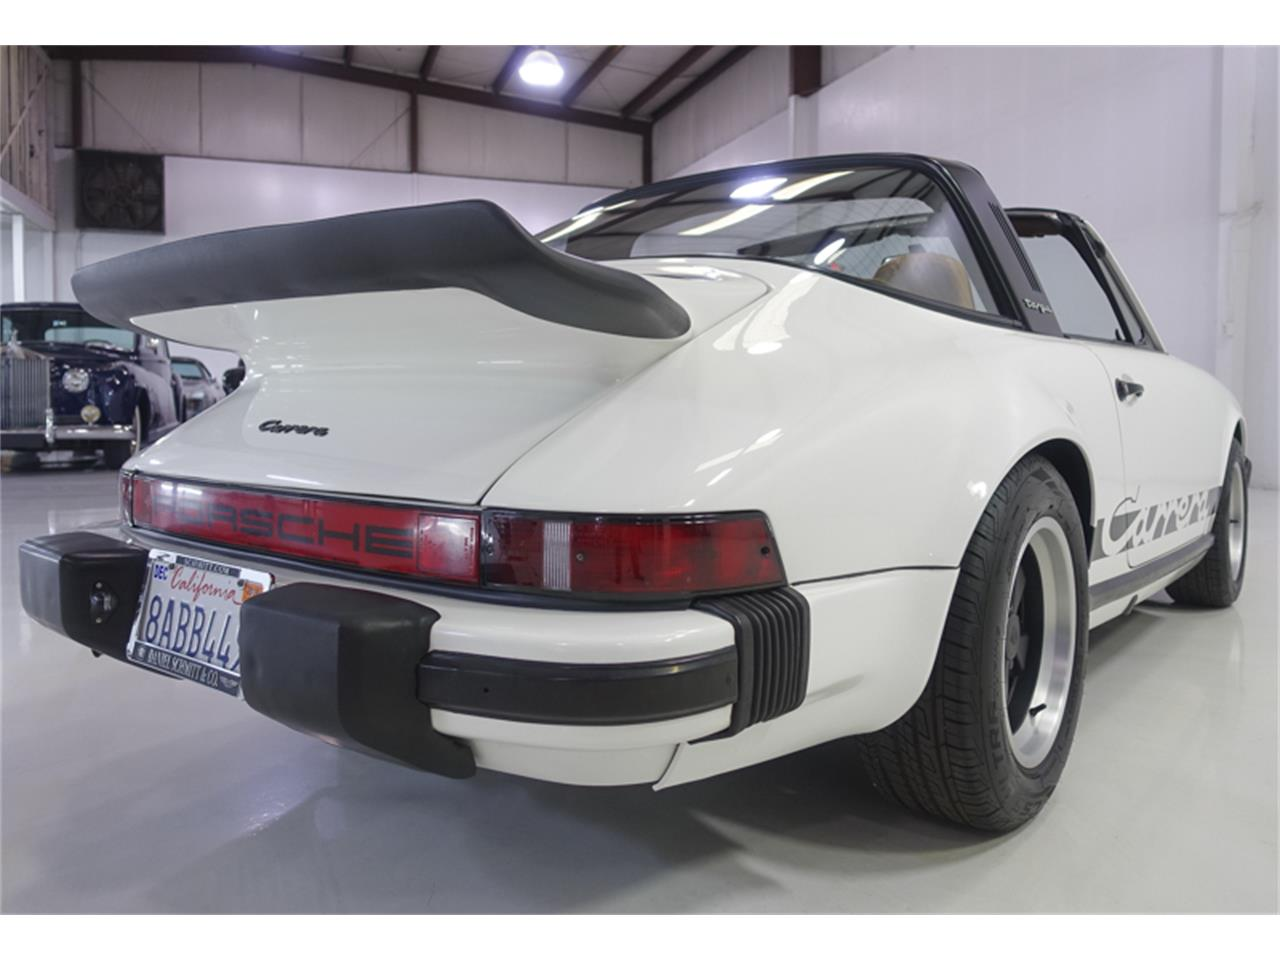 Large Picture of '75 Porsche 911 Carrera located in Saint Louis Missouri - $74,900.00 Offered by Daniel Schmitt & Co. - PGEE